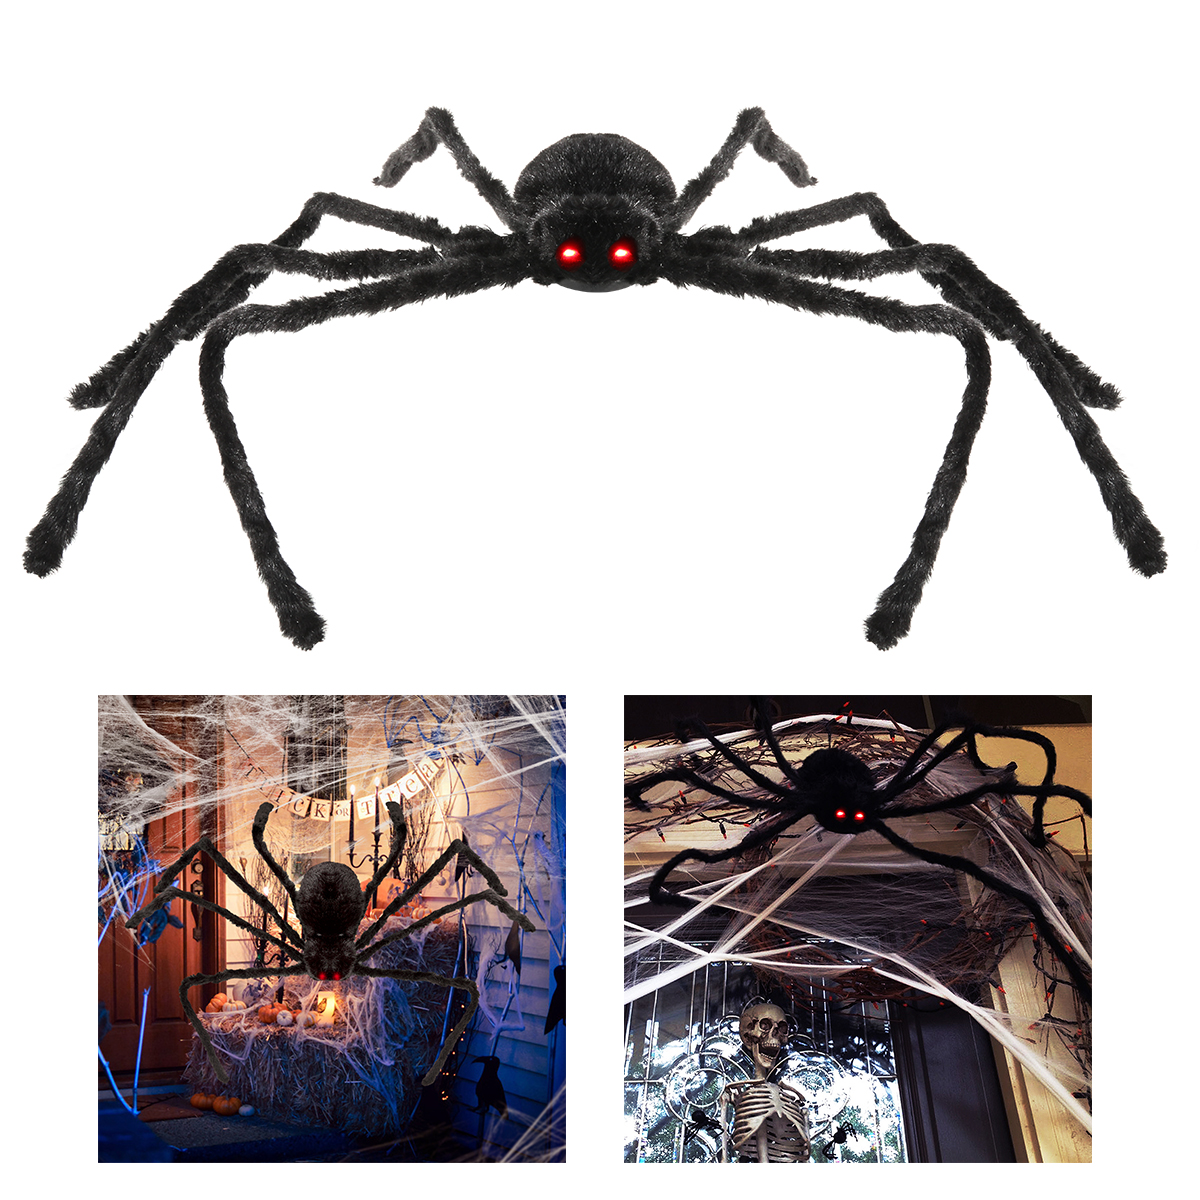 Halloween spider decoration - Poseable Furry Spider Led Sound Control Simulate Black Giant Hairy Spider Halloween Party Prop Decoration Halloween Spider Decor